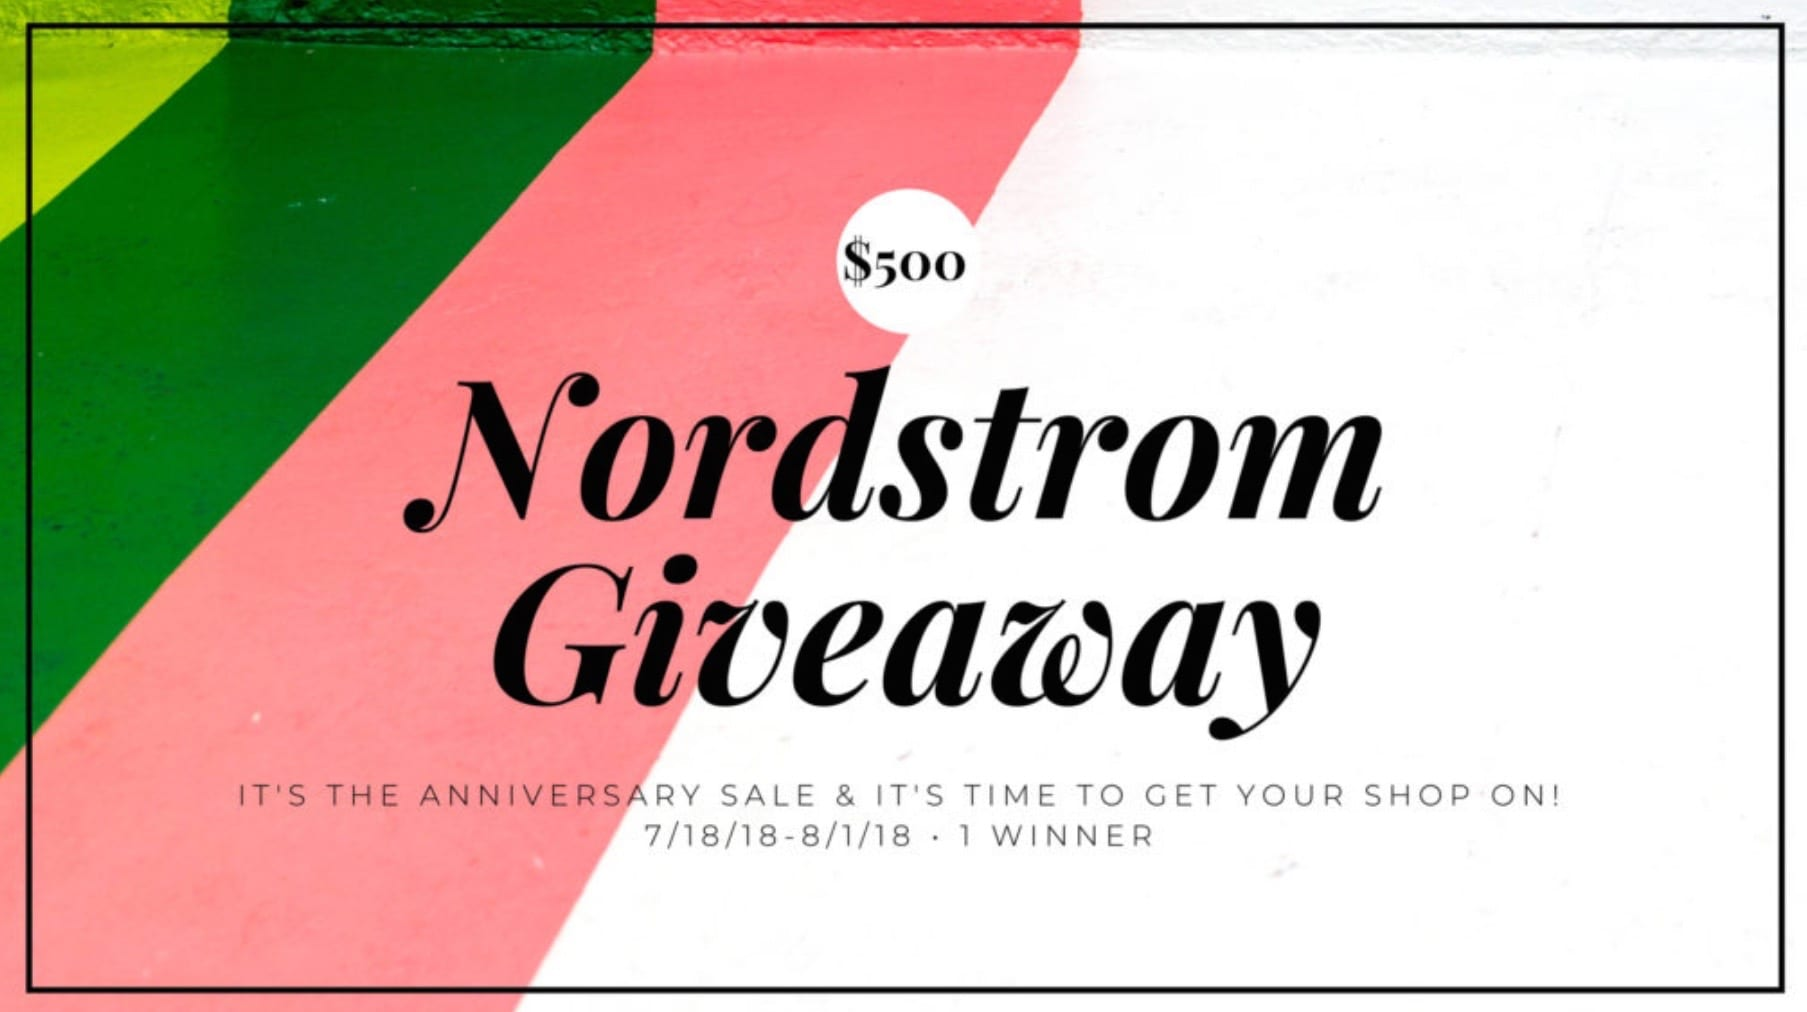 nordstrom sweepstakes enter to win 500 nordstrom gift card giveaway sheshe show 8352